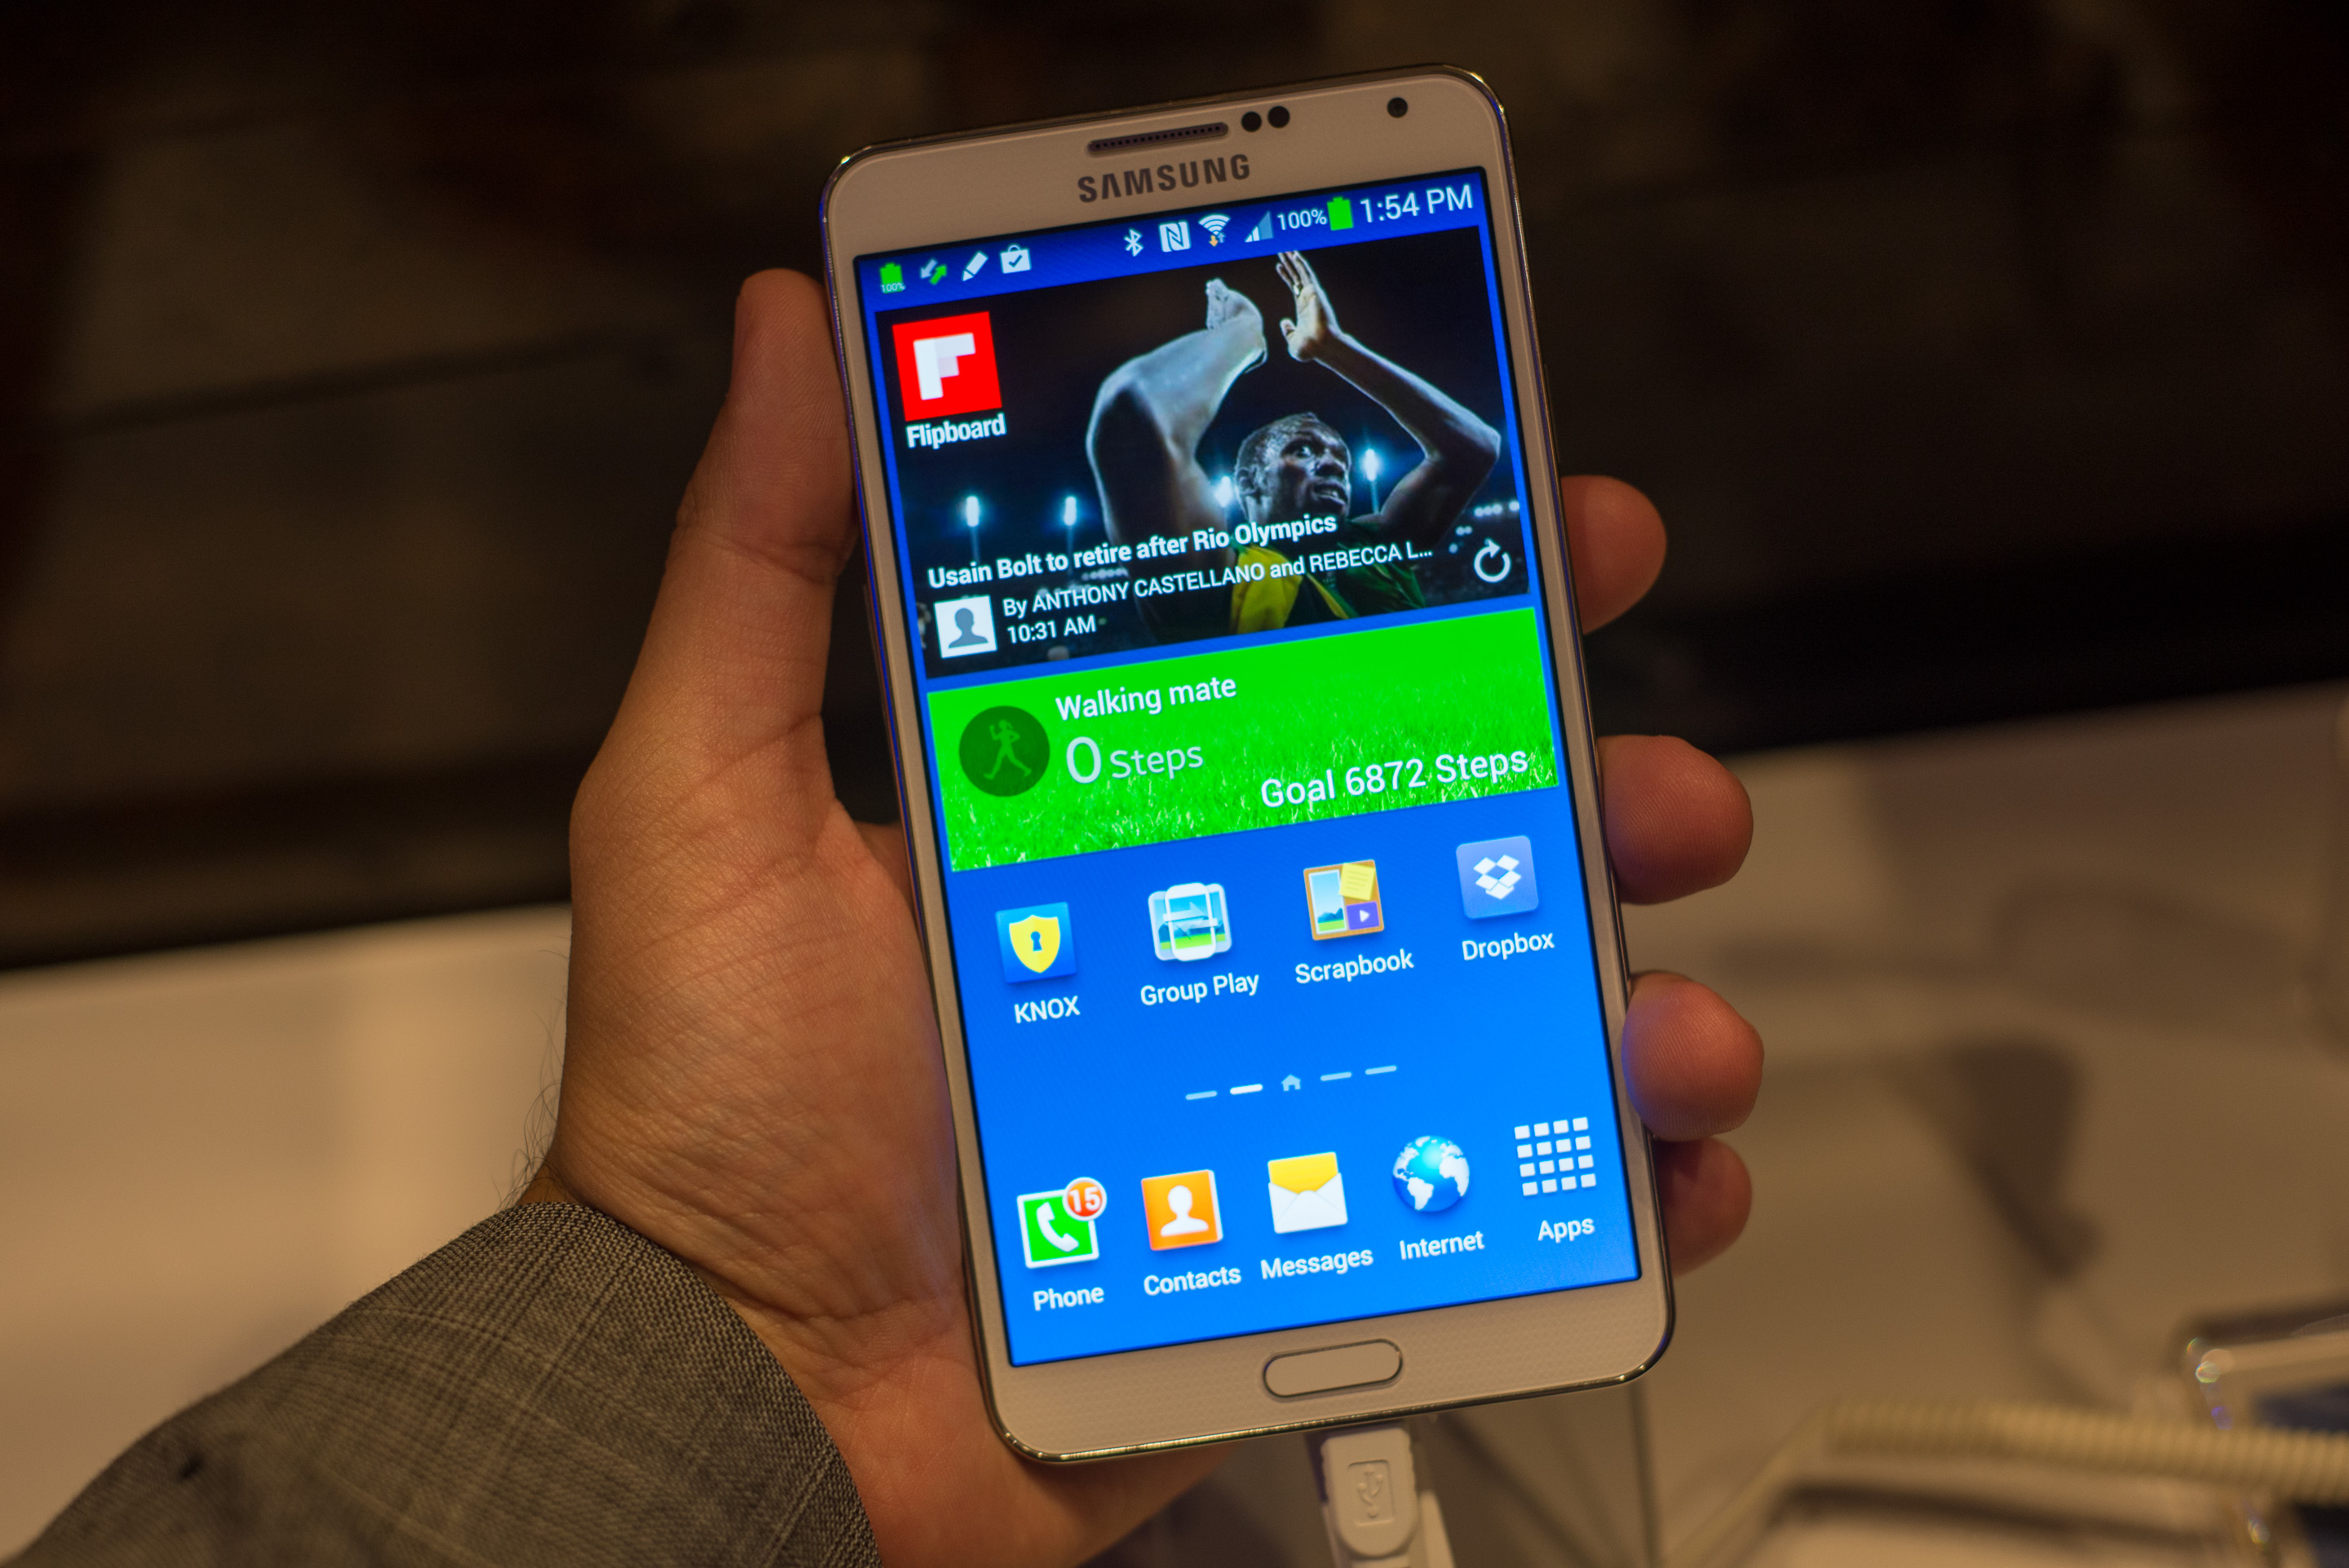 Samsung's Galaxy Note 3: Snapdragon 800 in a Slimmer Galaxy Note